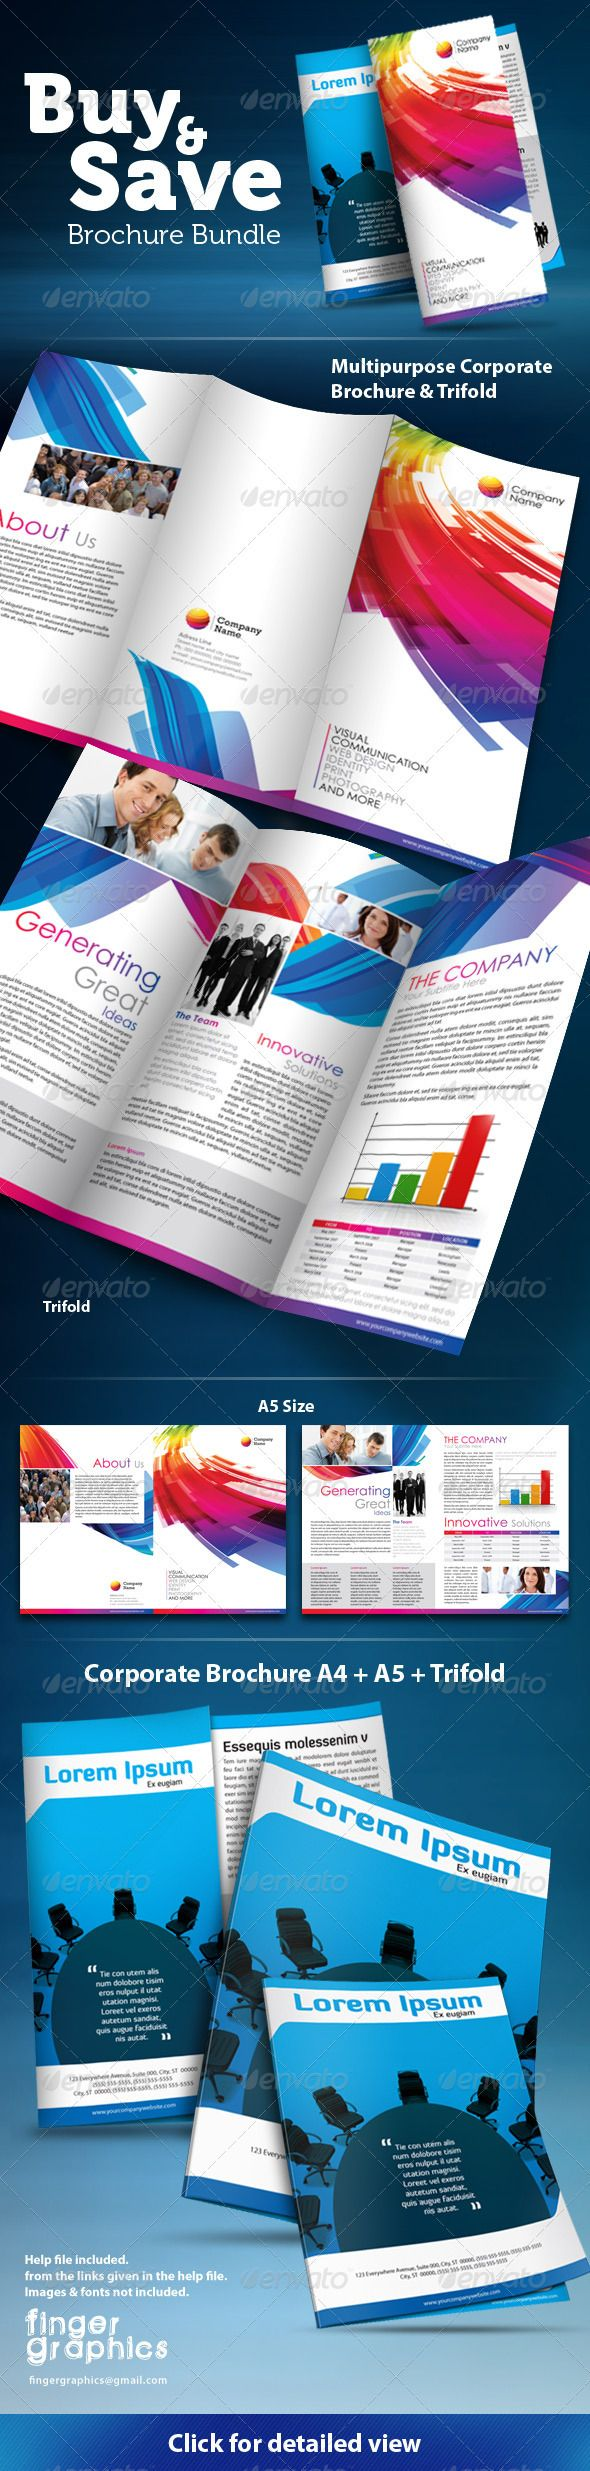 Multipurpose Brochure & Trifold Bundle — InDesign Template | Best ...